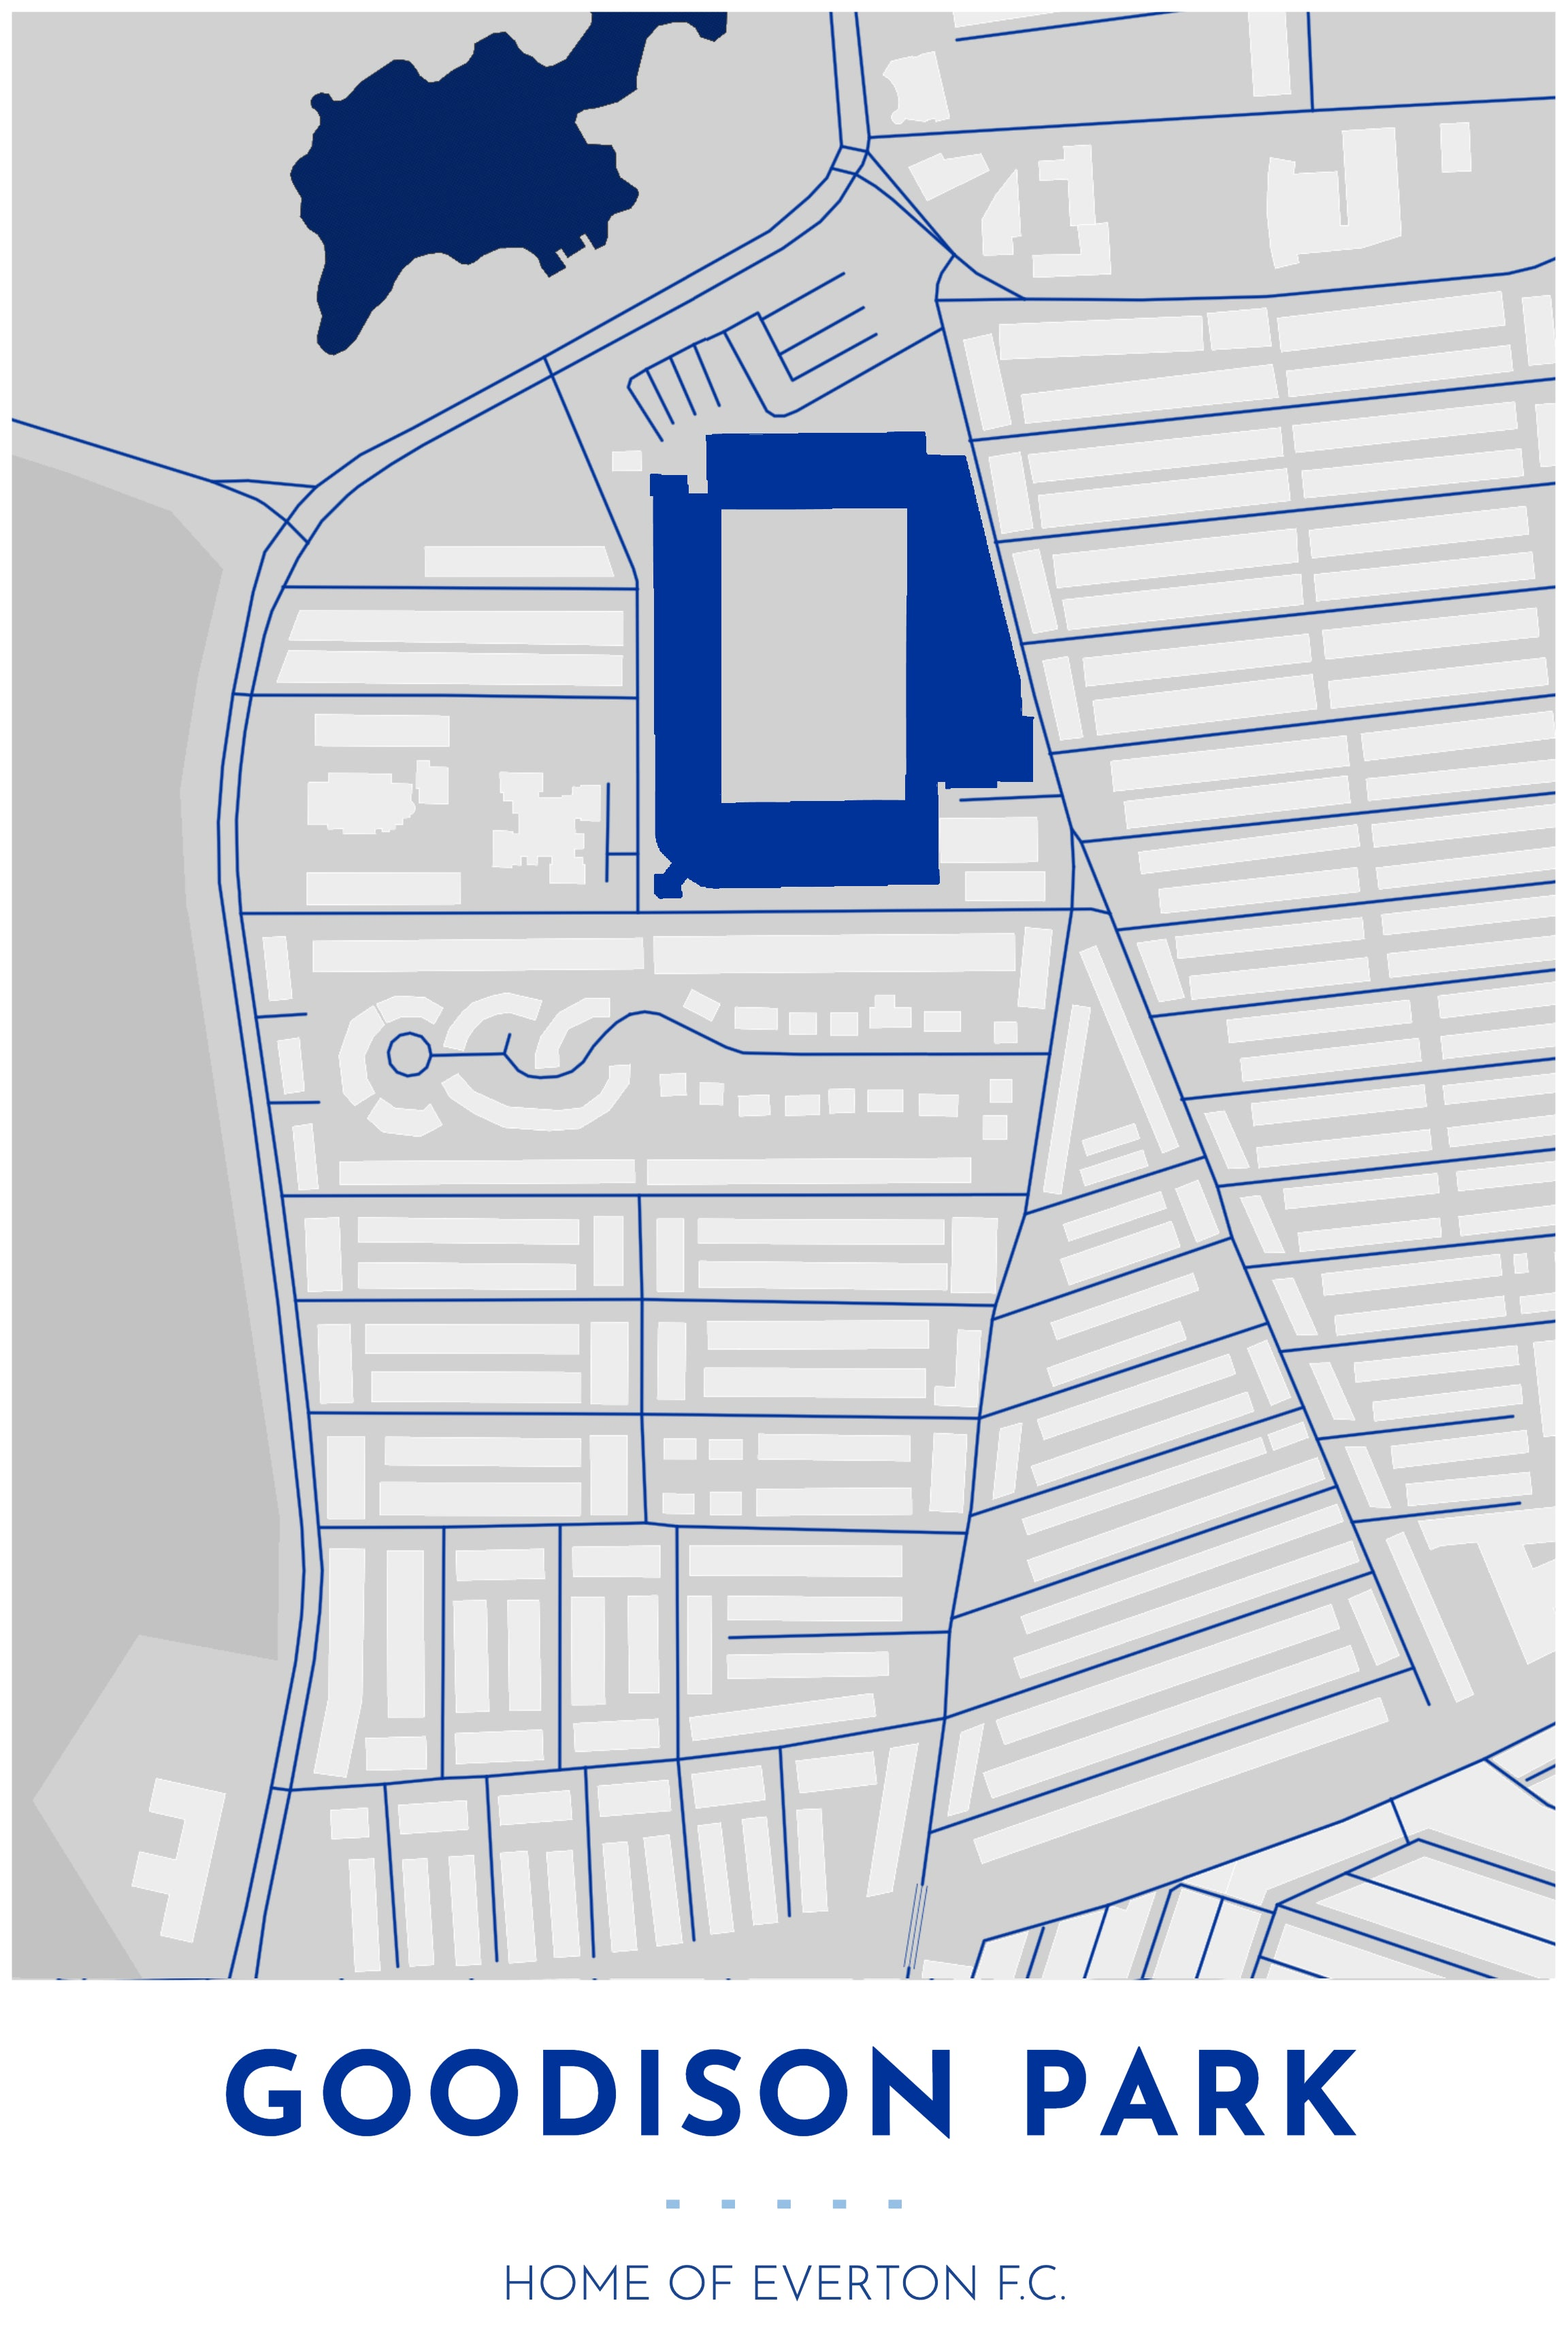 everton goodison park map